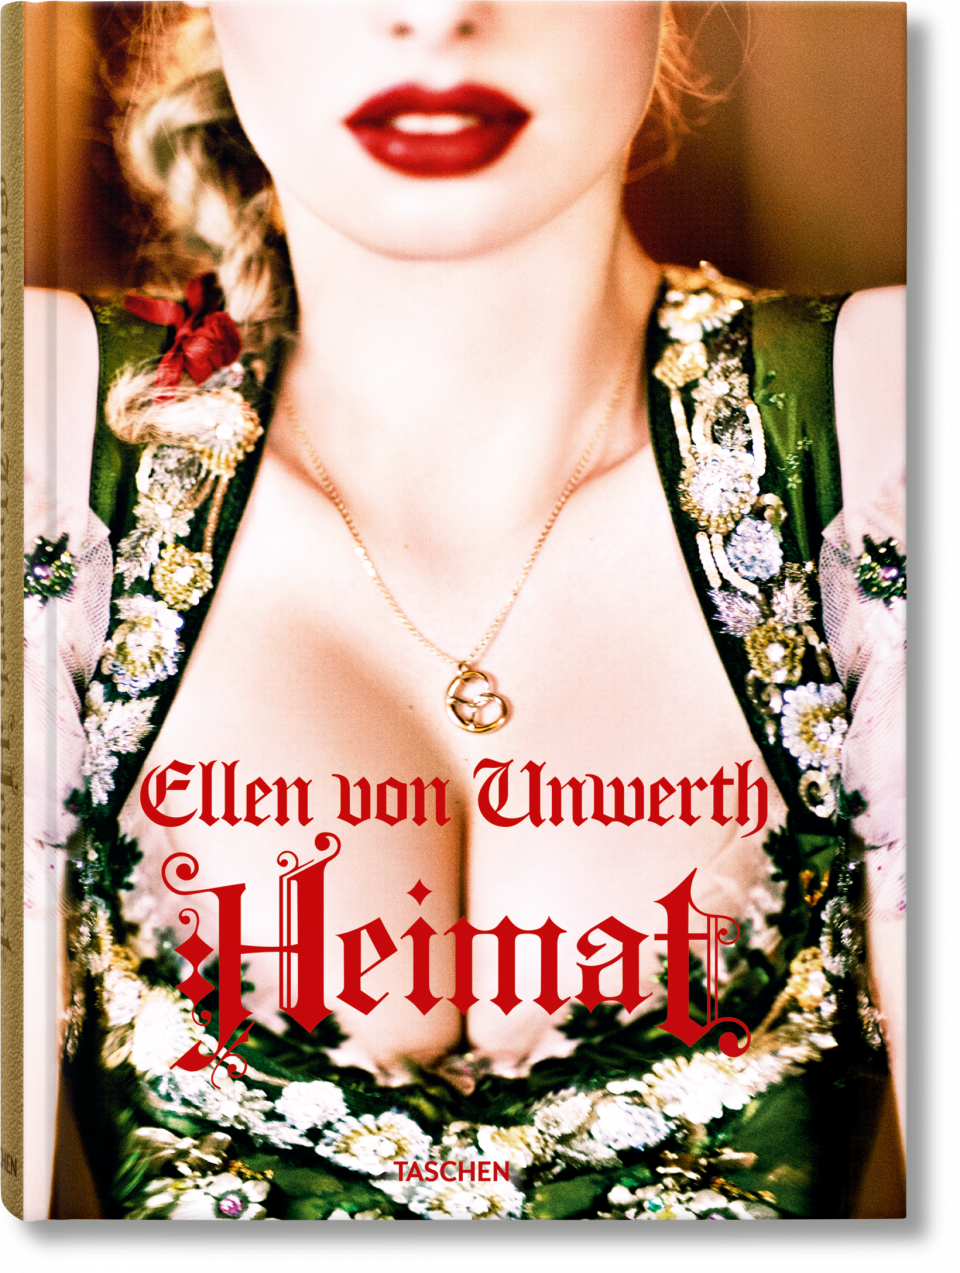 Ellen von Unwerth, Heimat - Bavarian show catalogue, 2017